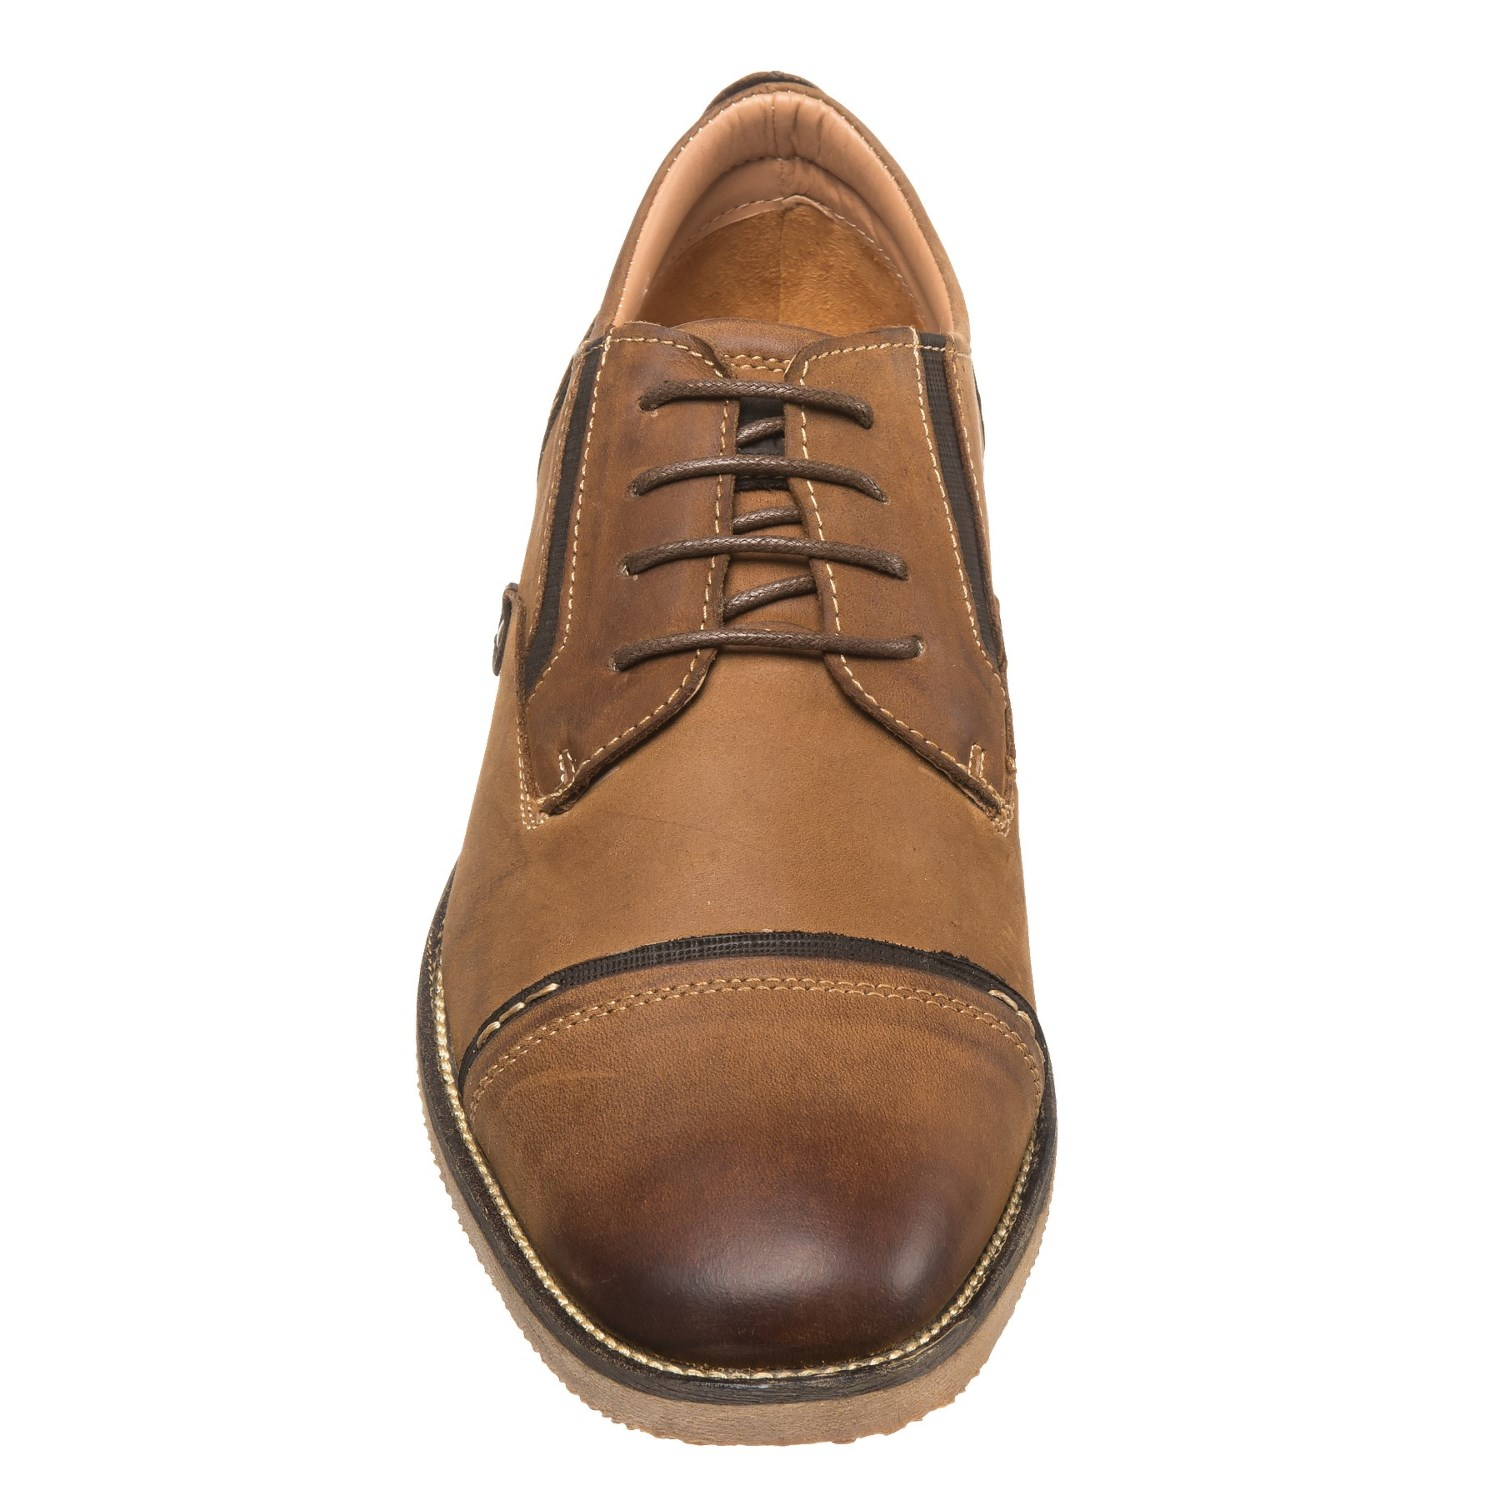 71e51964a85 Steve Madden Lessim Cap-Toe Shoes - Leather (For Men)